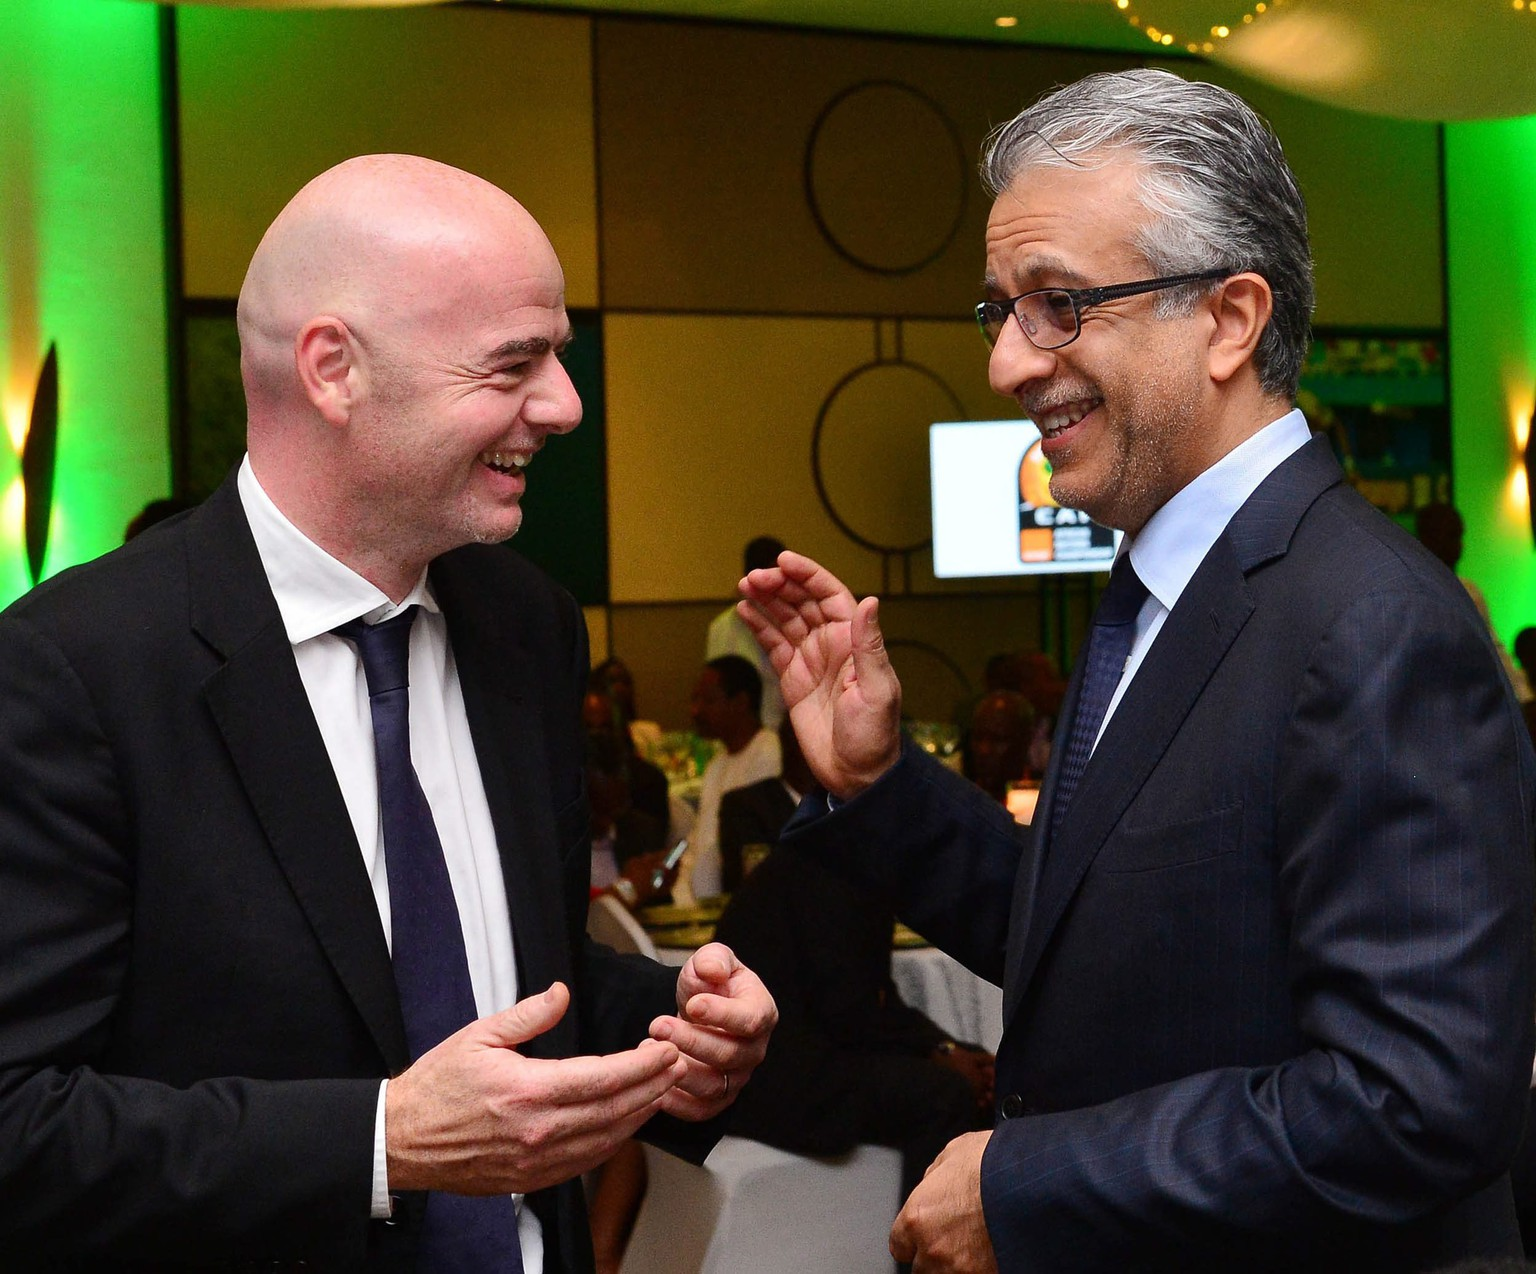 epa05145308 FIFA Presidential candidates Gianni Infantino (L) and Shaikh Salman Al Khalifa during the CAF LOC Dinner at the Serena Hotel in Kigali, Rwanda, 05 February 2016.  EPA/GAVIN BARKER UK AND IRELAND OUT